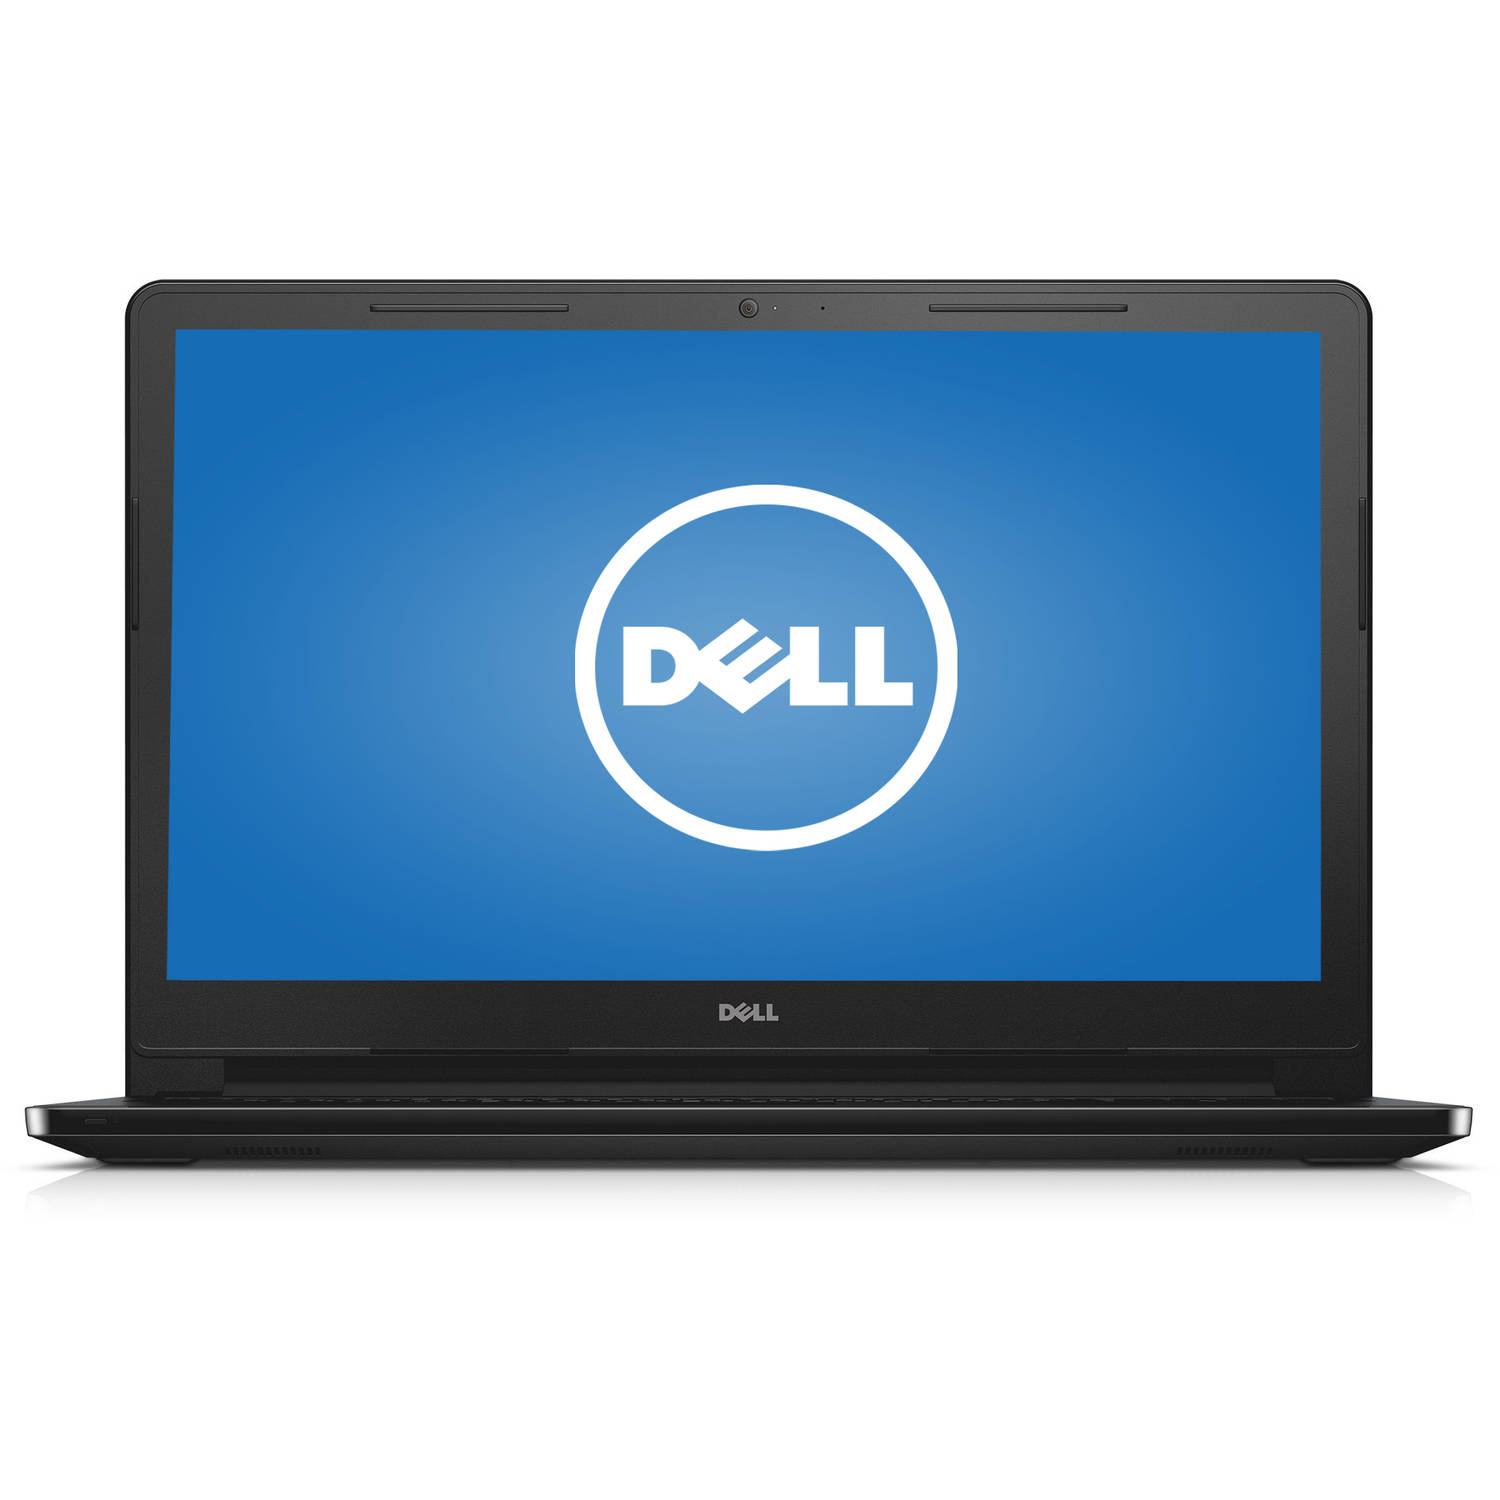 "Dell Black 15.6"" Inspiron i3552 Laptop PC with Intel Celeron N3050 Processor, 4GB Memory, 500GB Hard... by Dell"